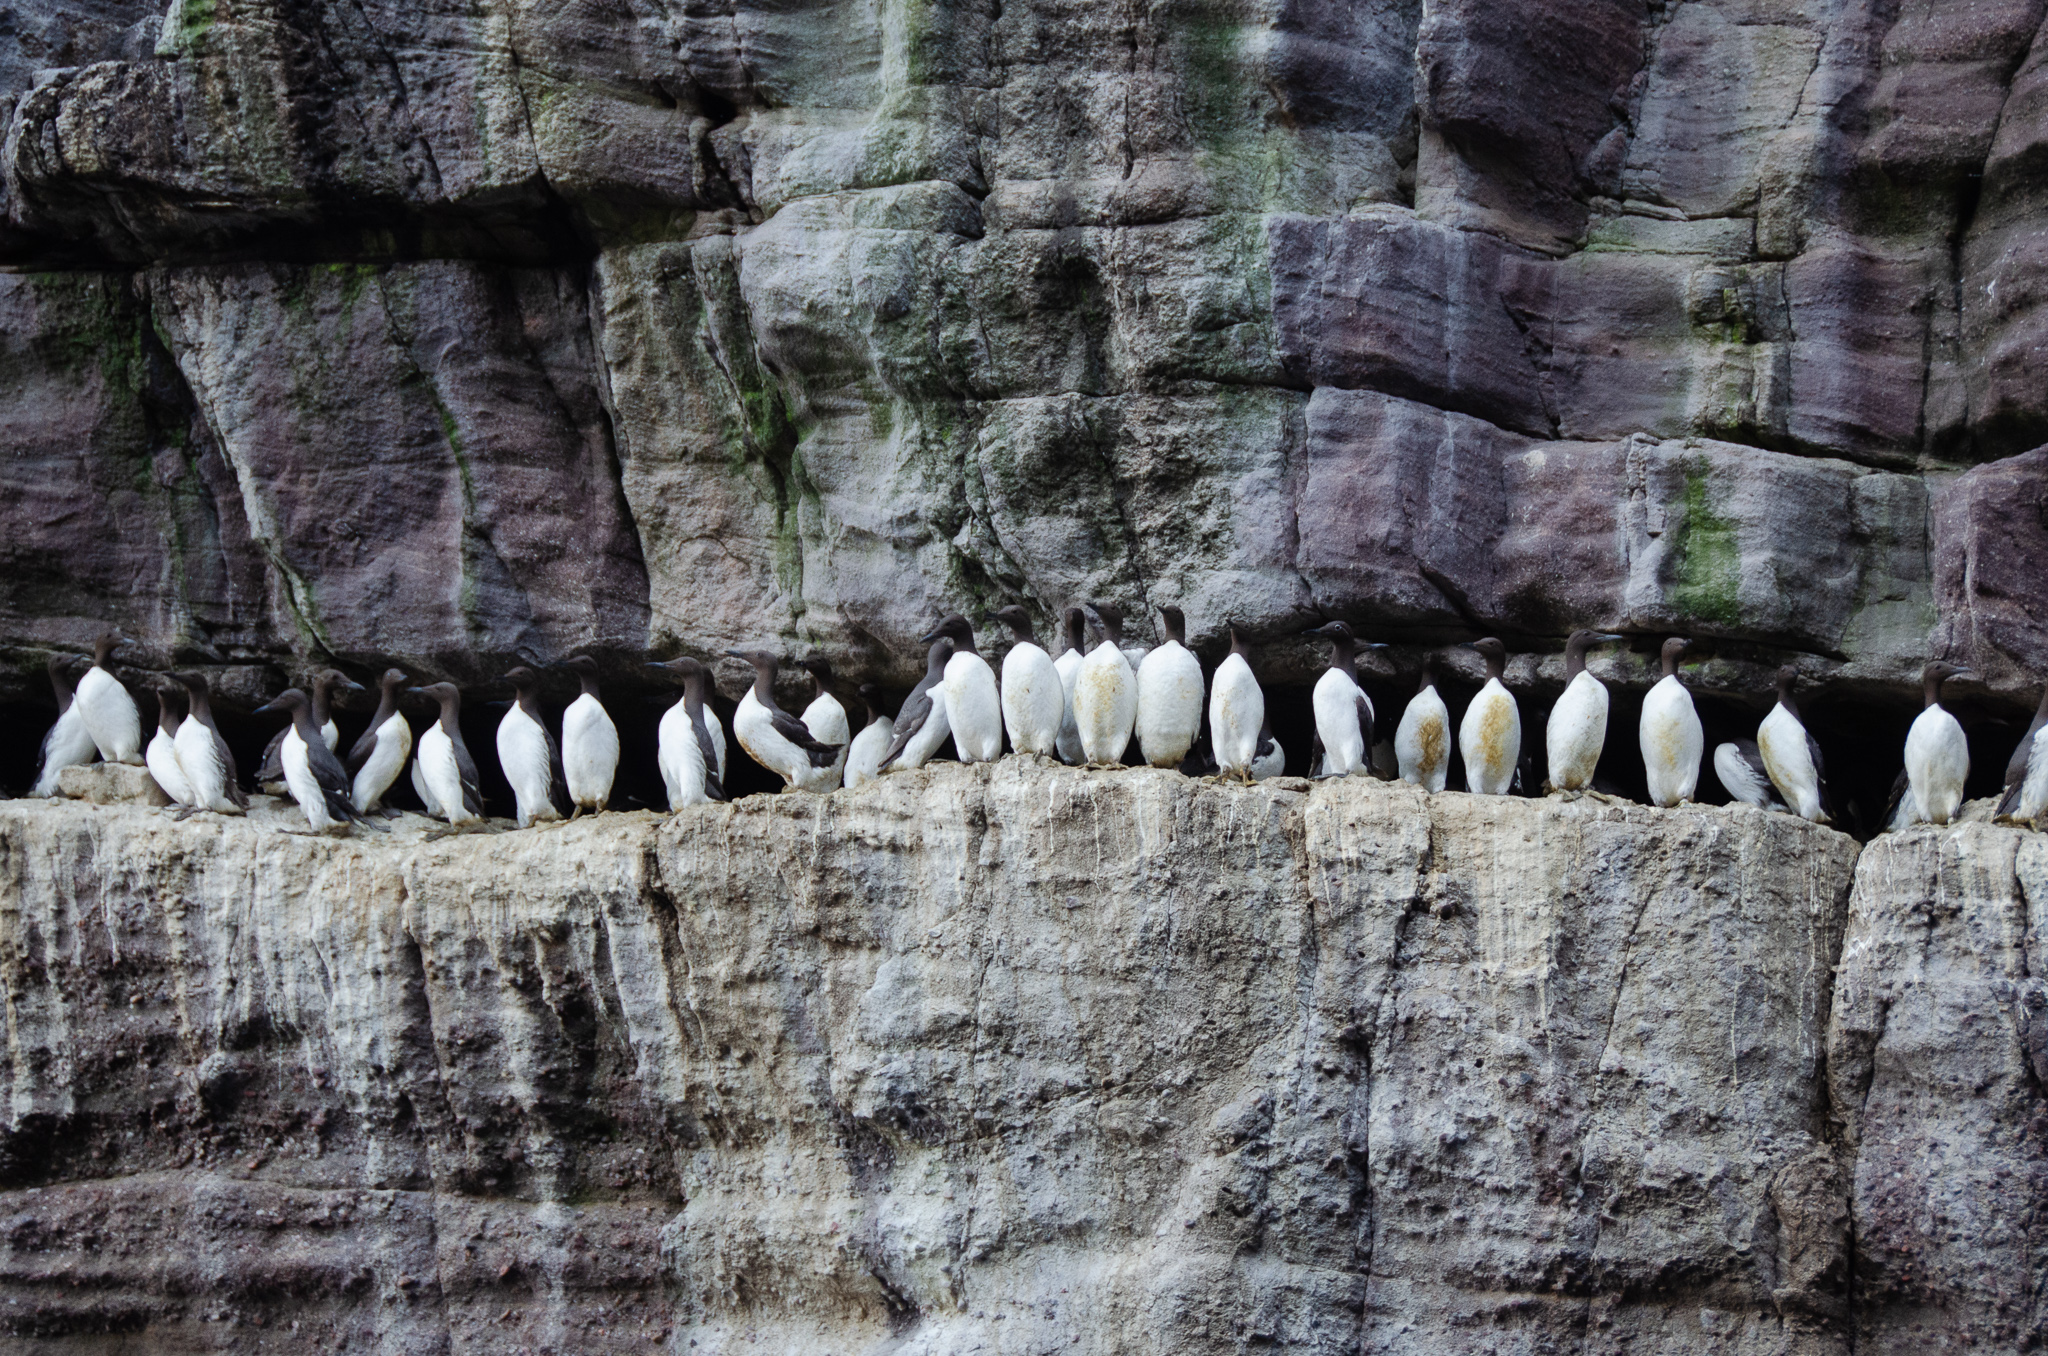 A line of Guillemots- they reminded me of a line of dominoes sandwiched on a ledge between two rock sheets